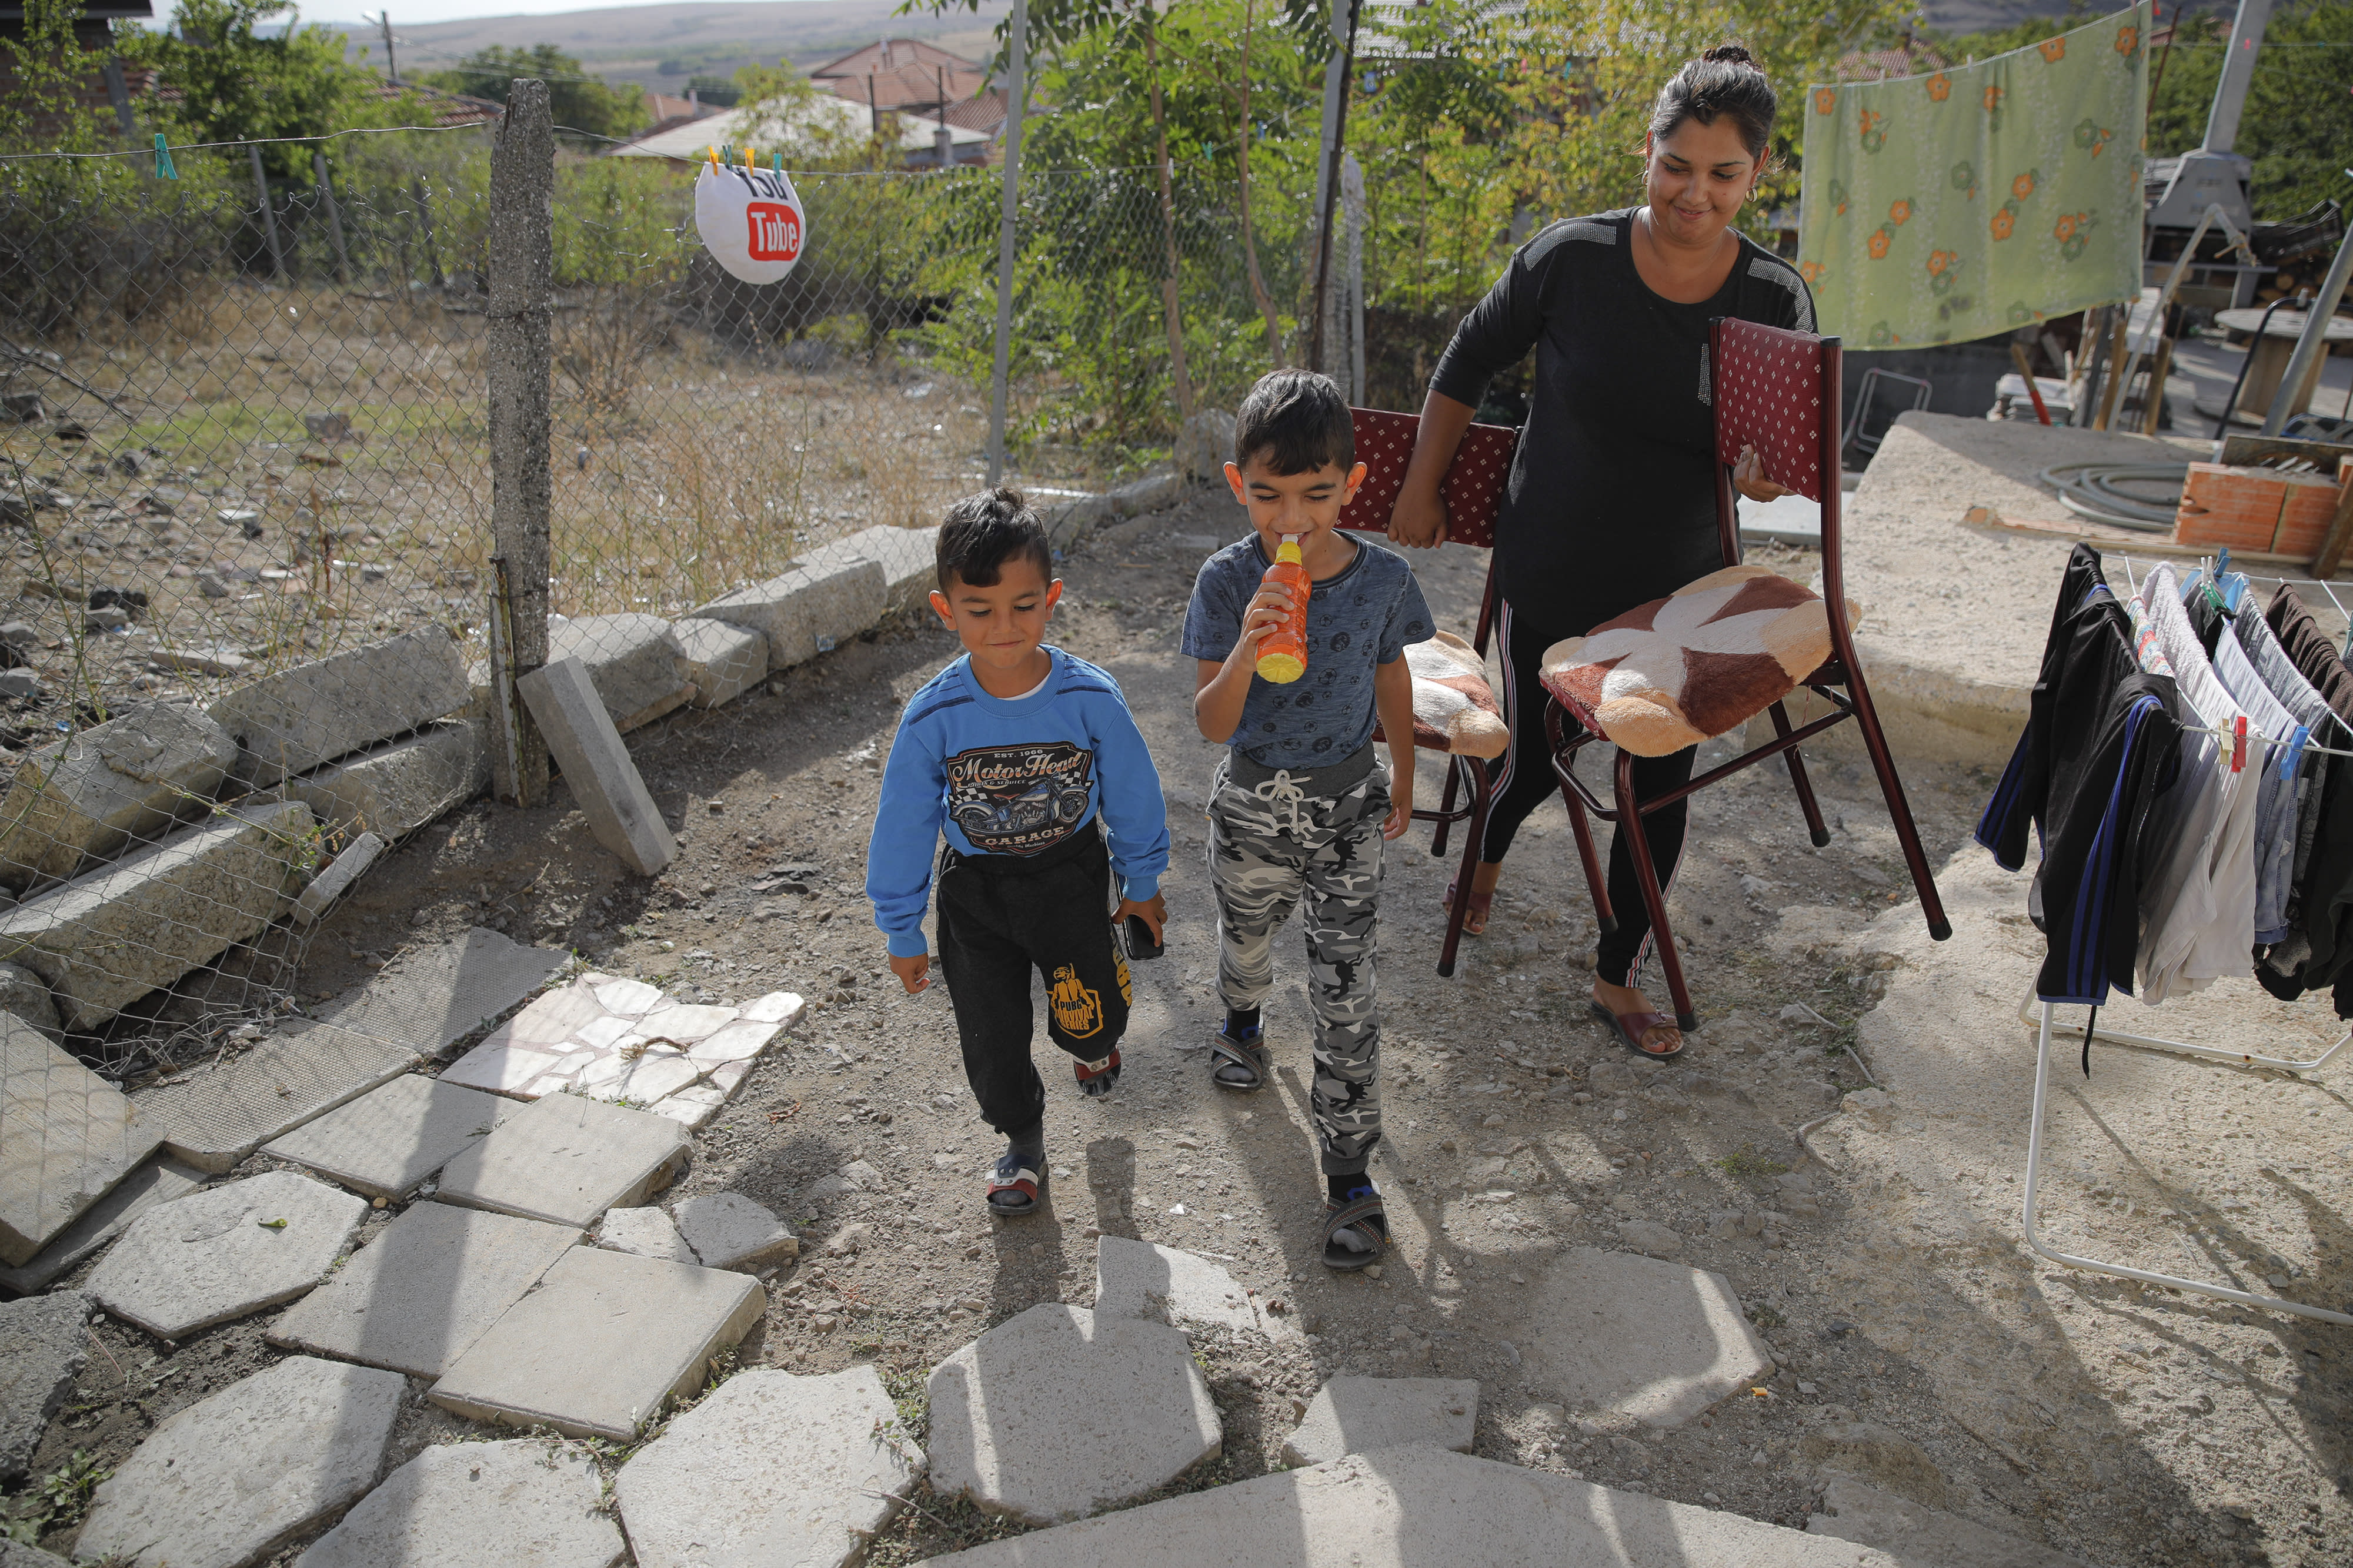 Bulgarian Roma children of the Topchu family walk in a village on the outskirts of Burgas, Bulgaria, Monday, Sept. 28, 2020. (AP Photo/Vadim Ghirda)